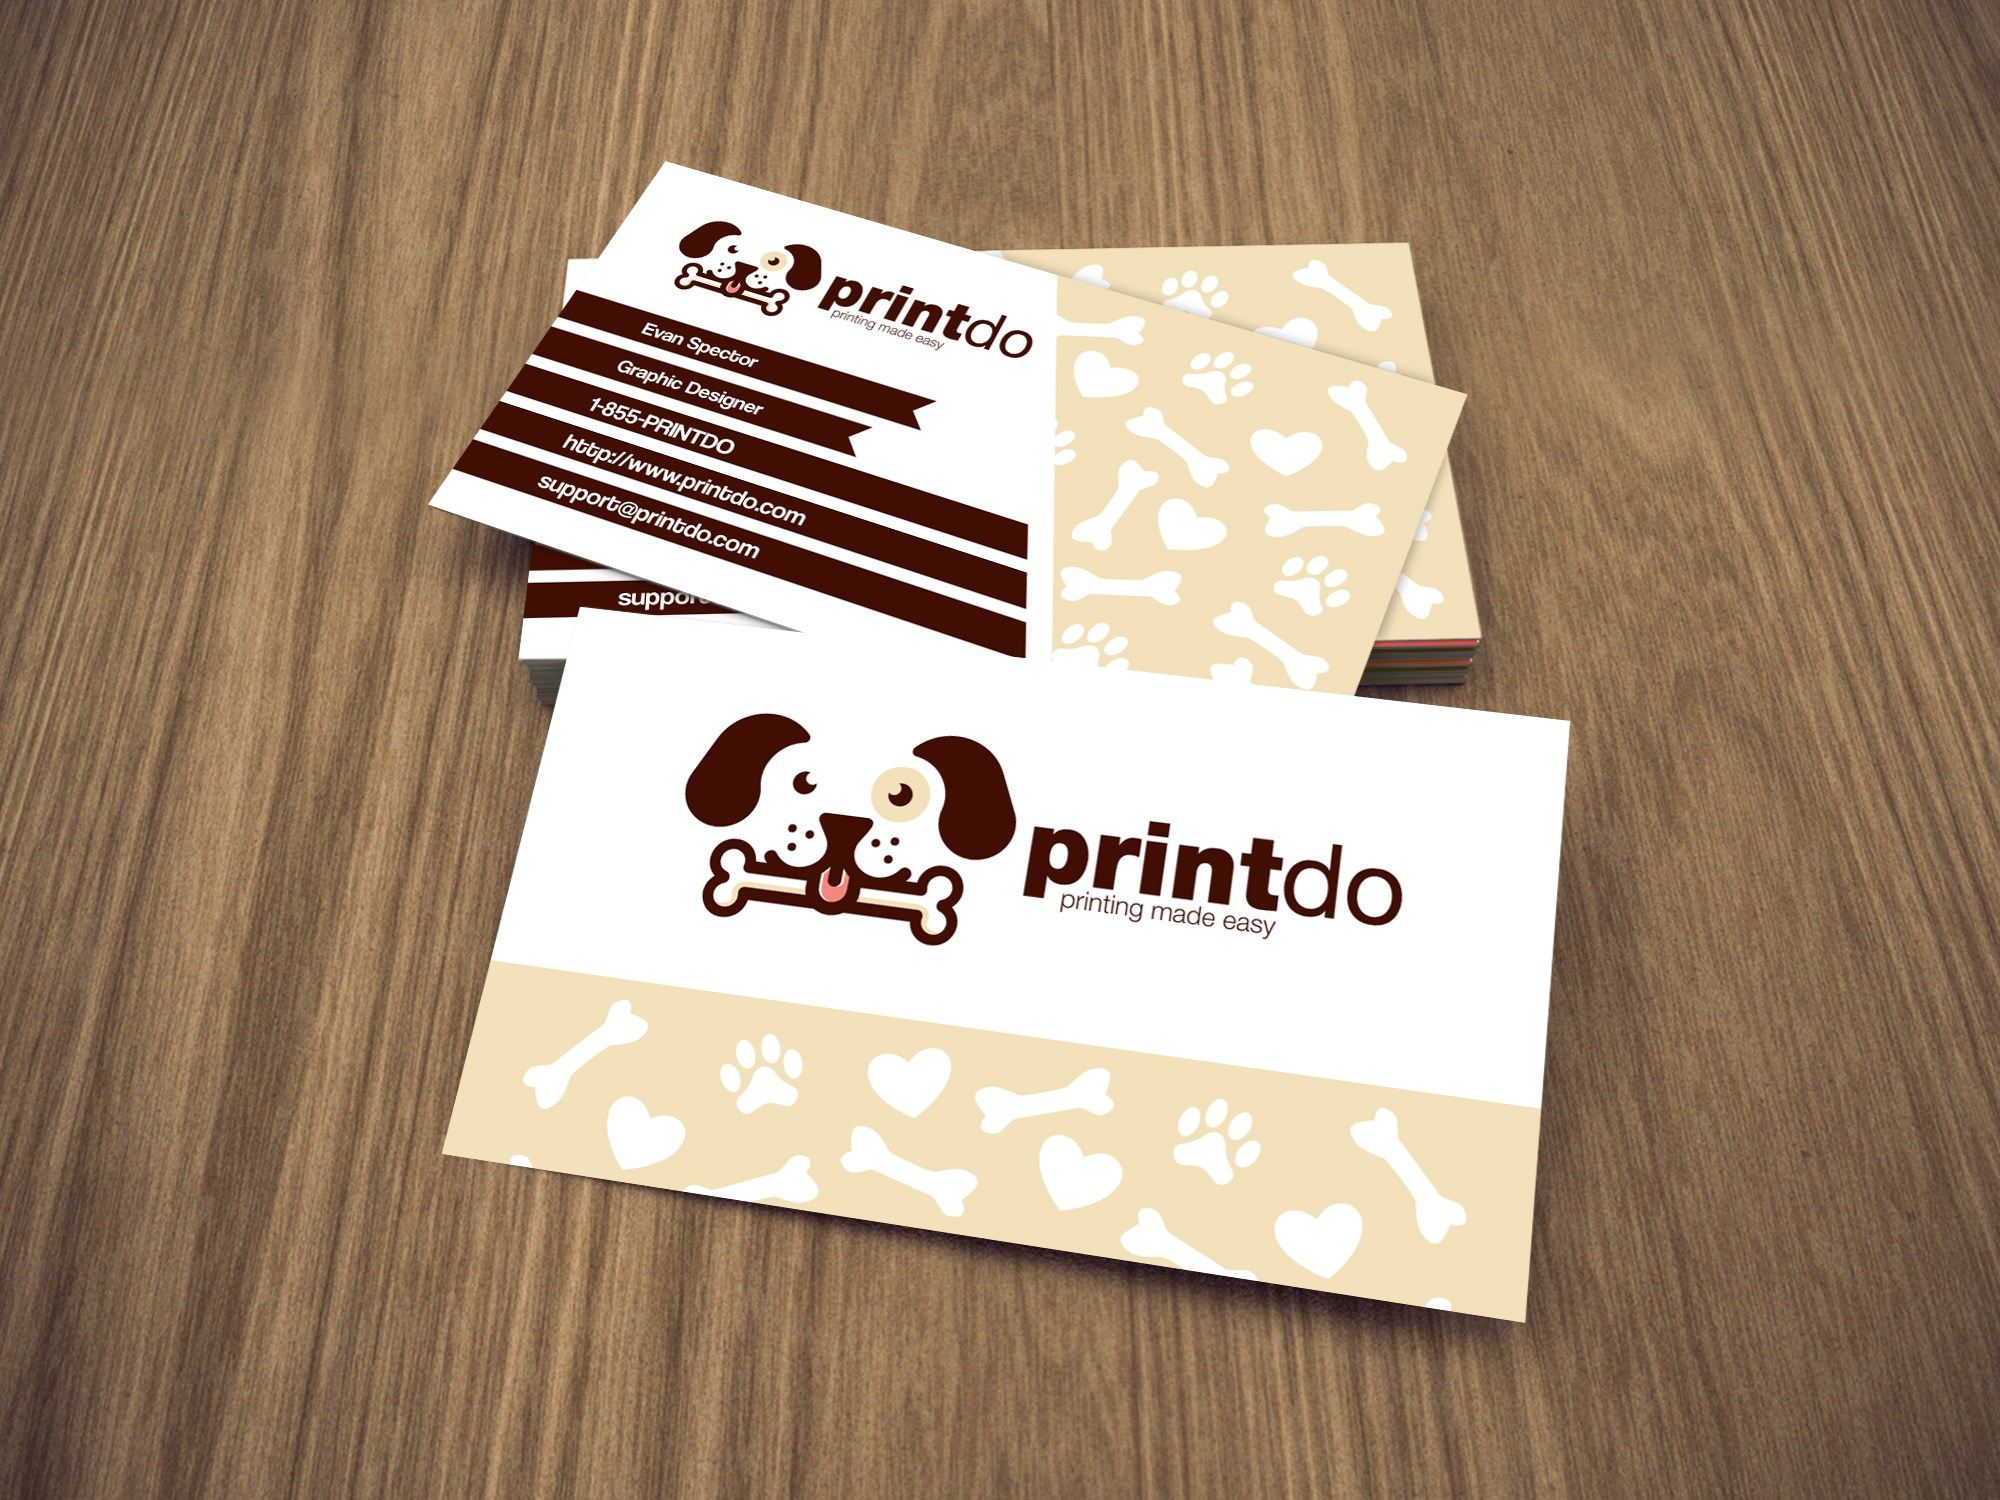 pet shop business card - Google Search | Business Cards ...